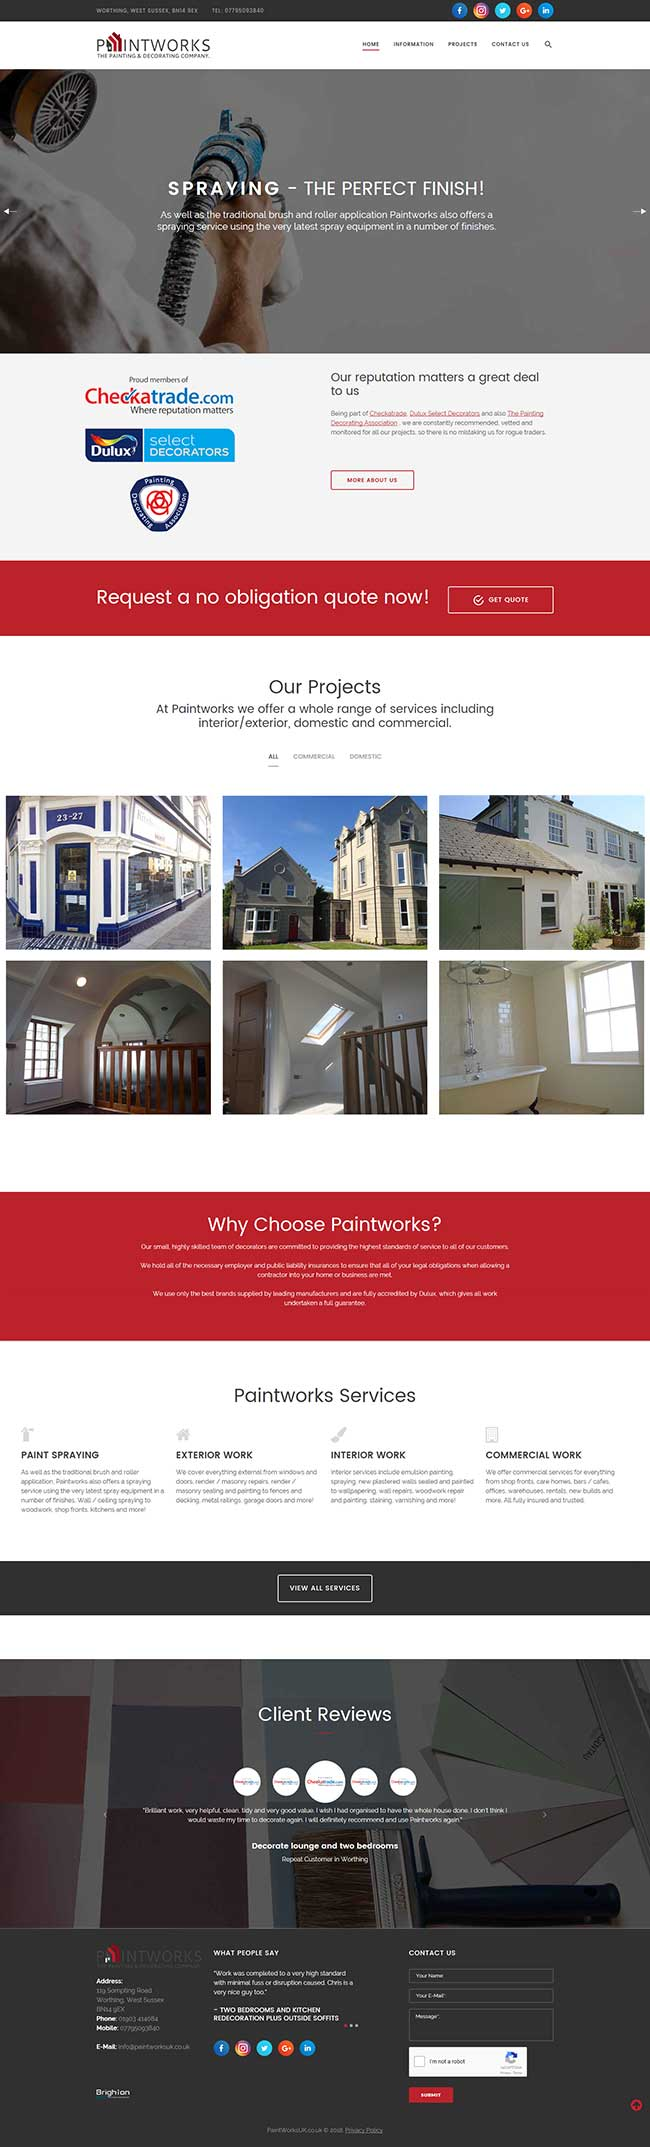 Paintworks Painters & Decorators Worthing